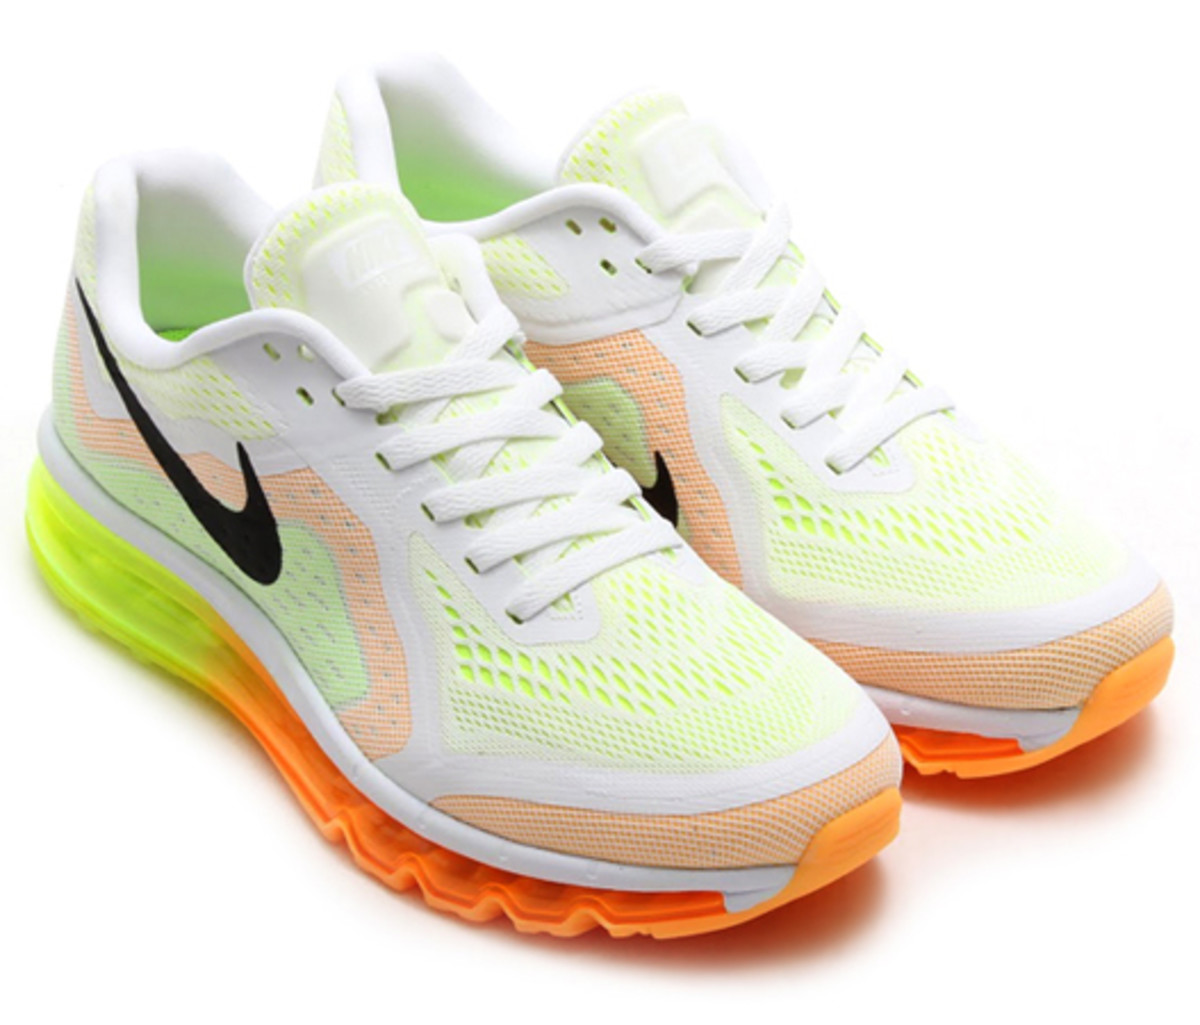 Nike Air Max 2014 White Atomic Mango Volt